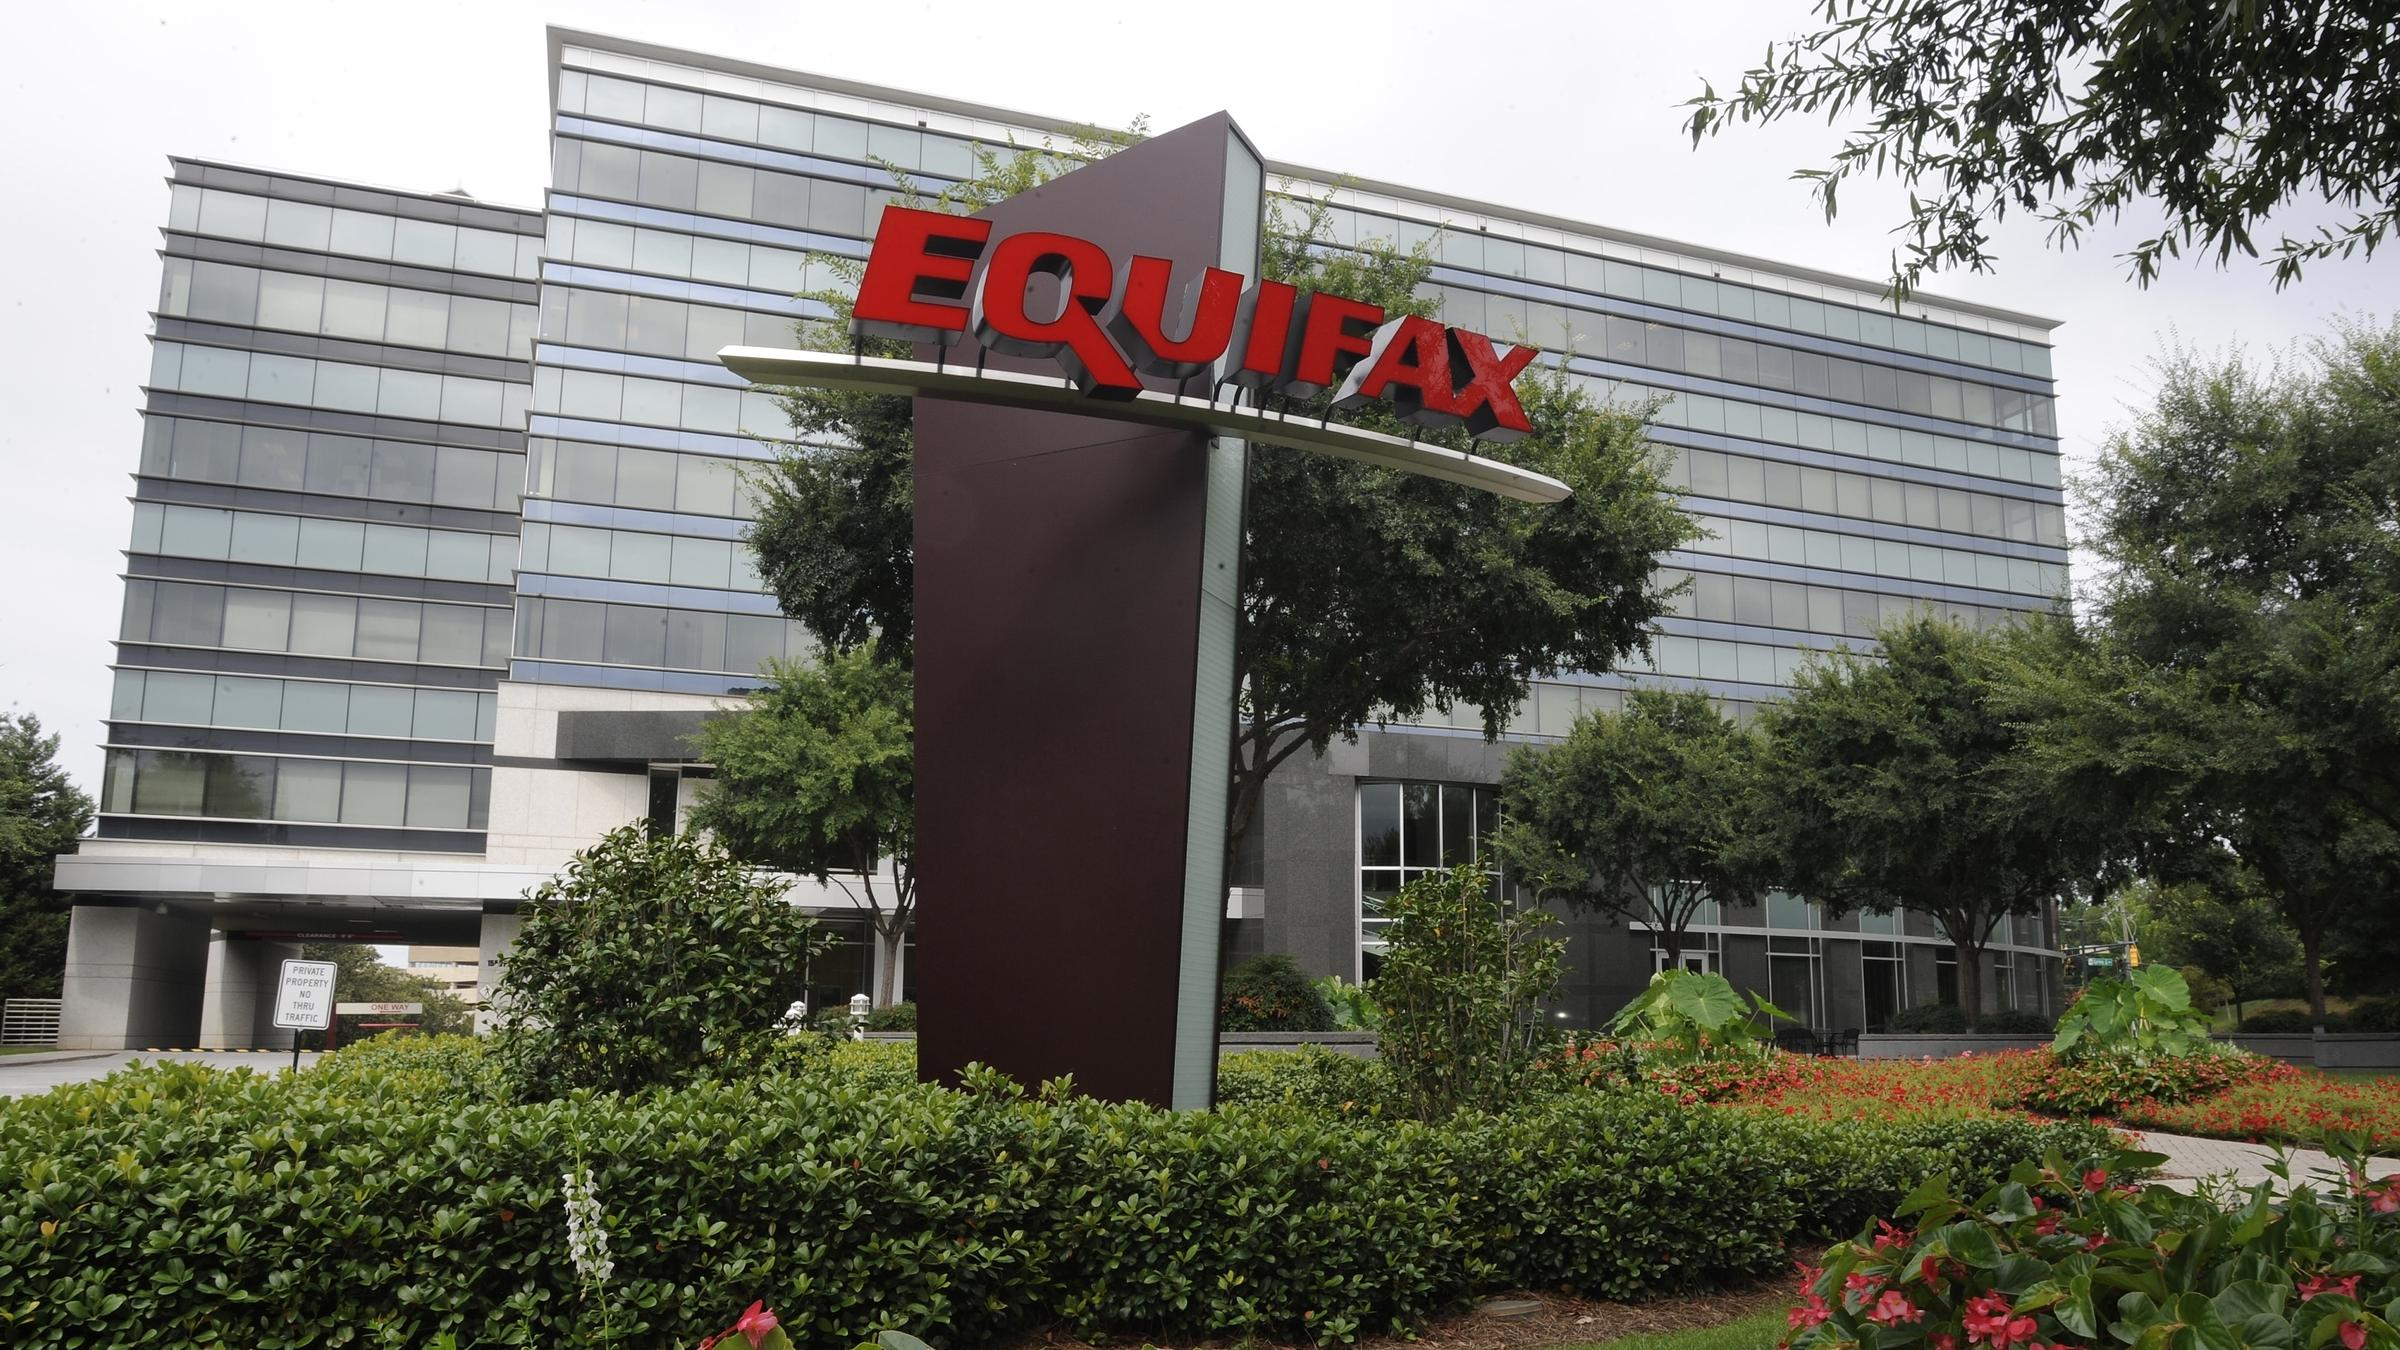 Equifax CEO to retire after massive data breach